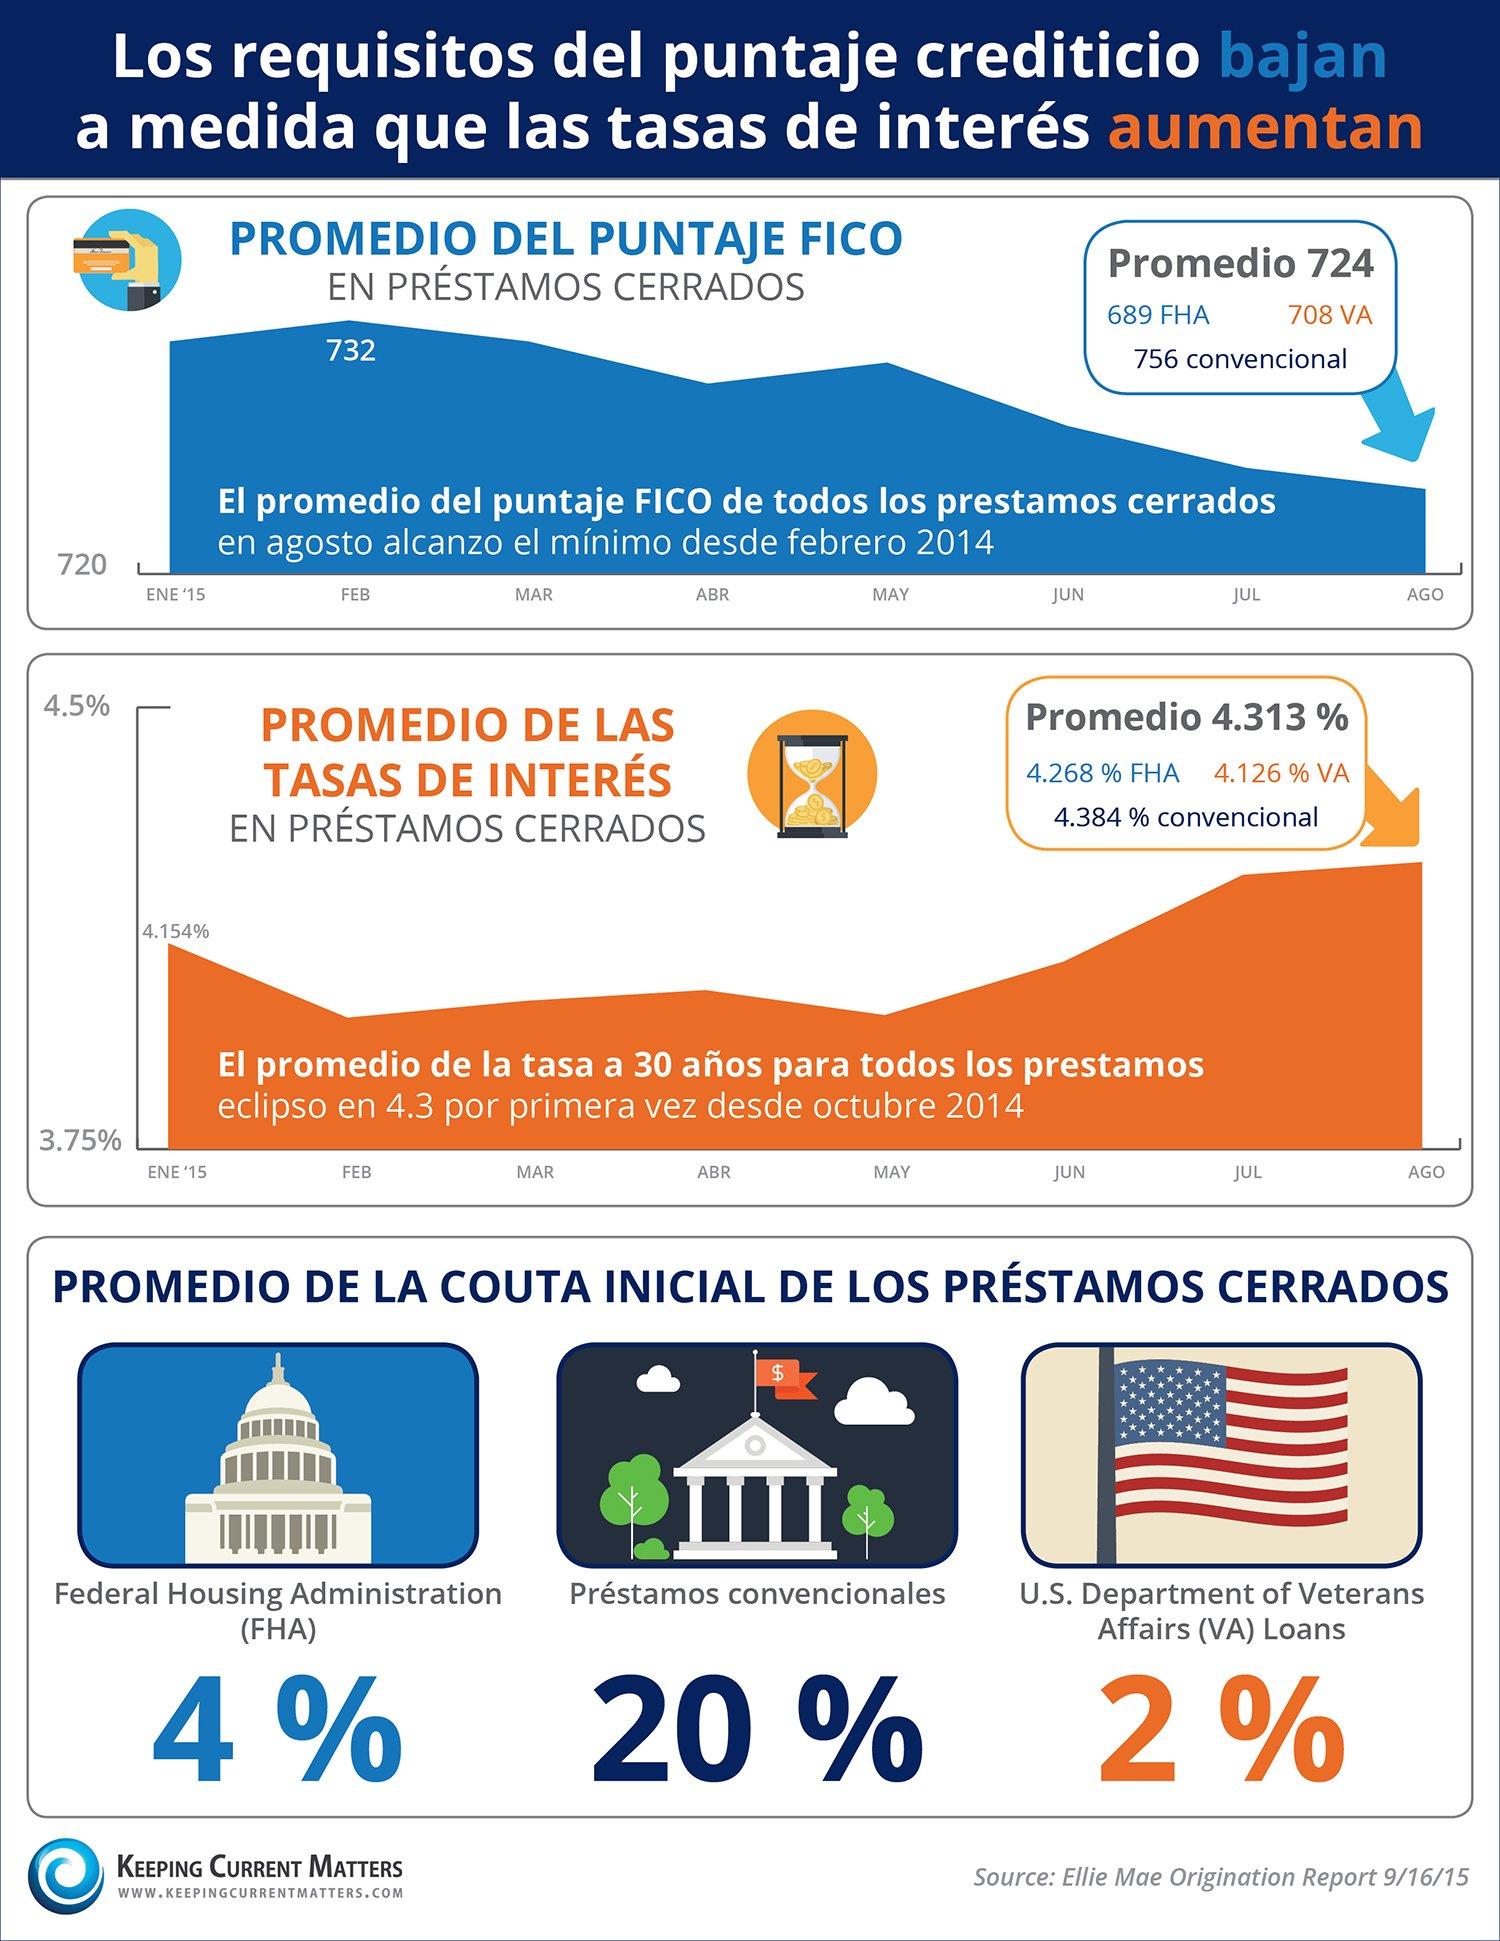 ¡Los requisitos del puntaje crediticio BAJAN a medida que las tasas de interés AUMENTAN! [INFOGRAFíA]  | Keeping Current Matters